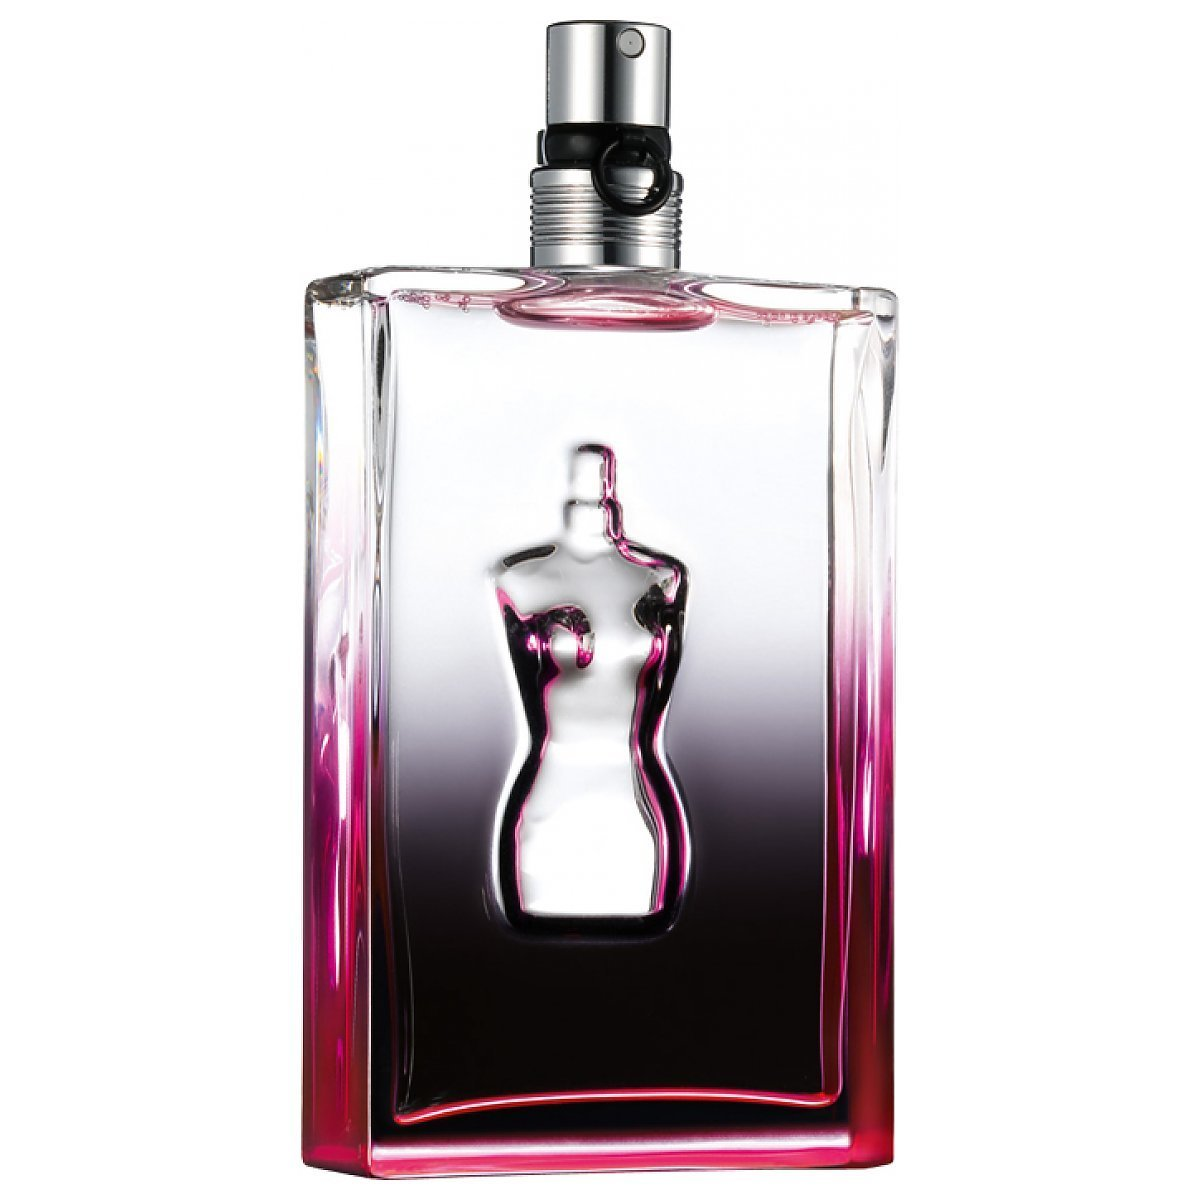 jean paul gaultier madame woda perfumowana spray 75ml. Black Bedroom Furniture Sets. Home Design Ideas